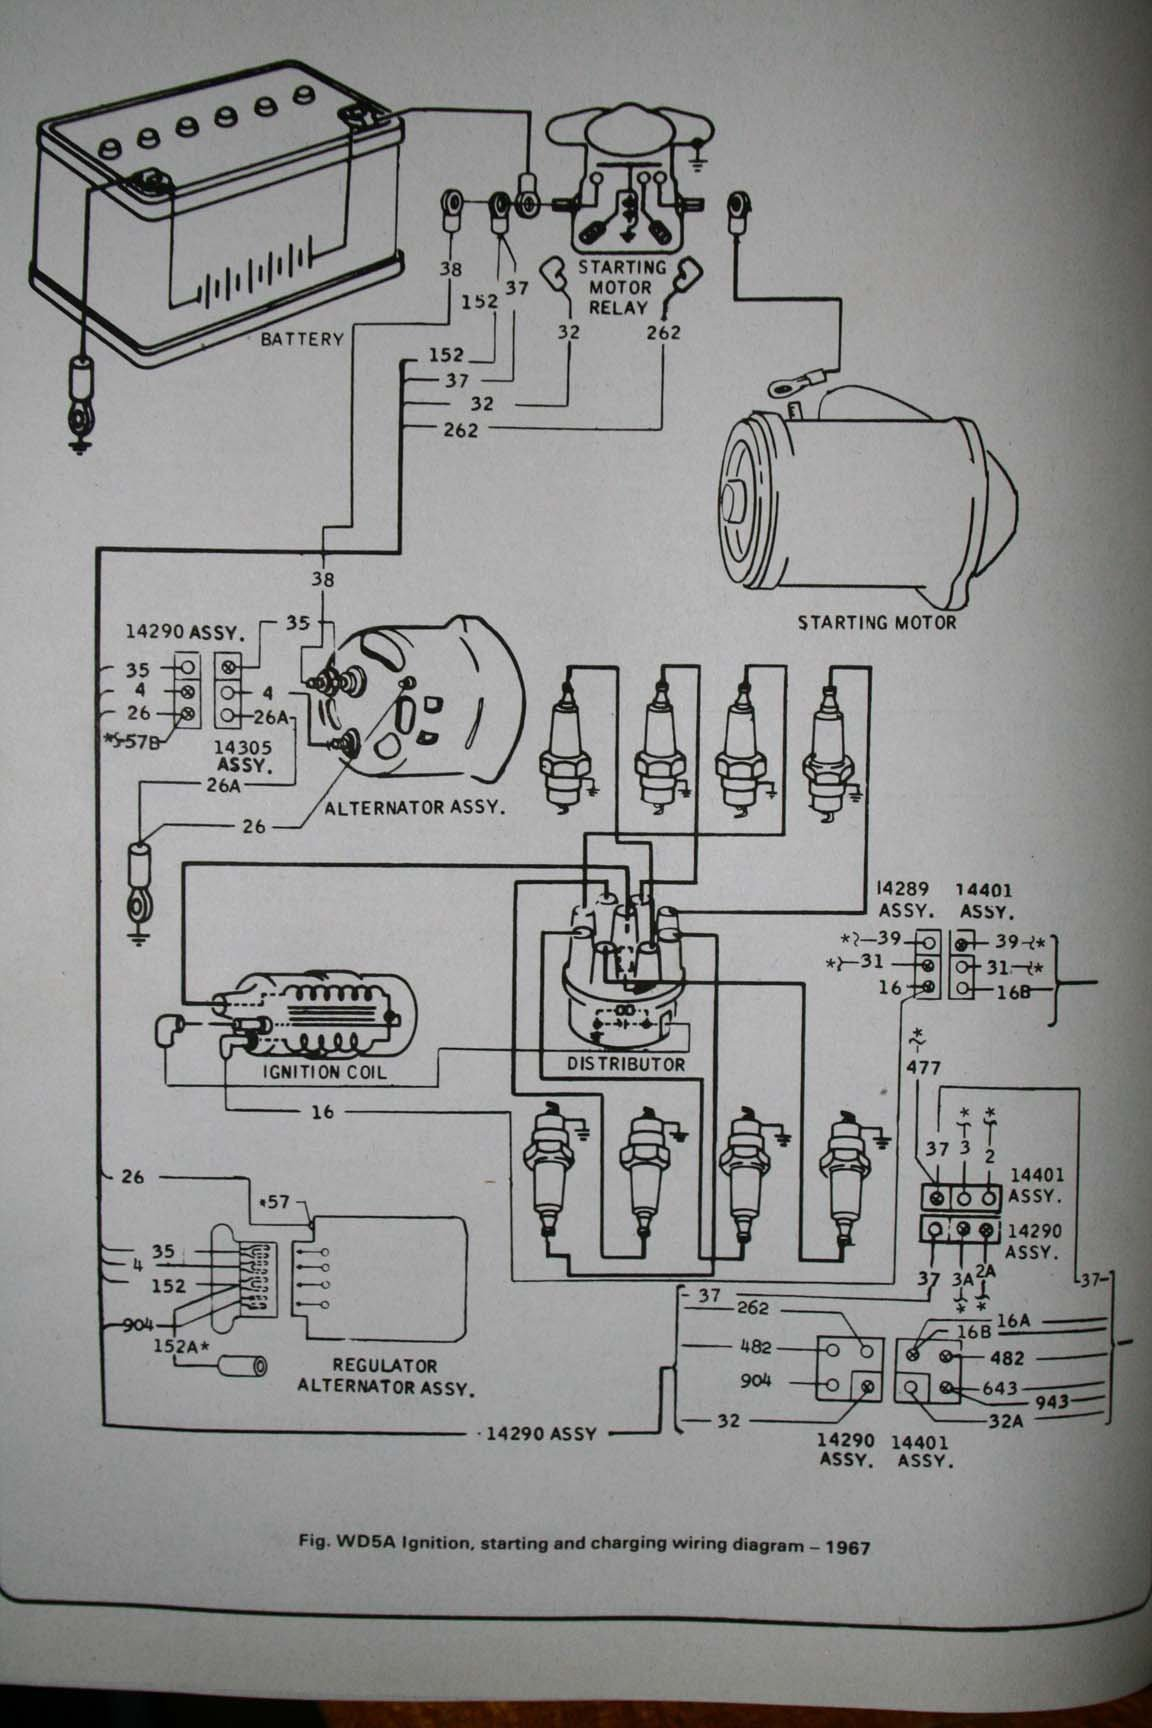 hitachi alternator wiring alternator wiring diagram hitachi hitachi  alternator wiring diagram light switch wiring diagram for